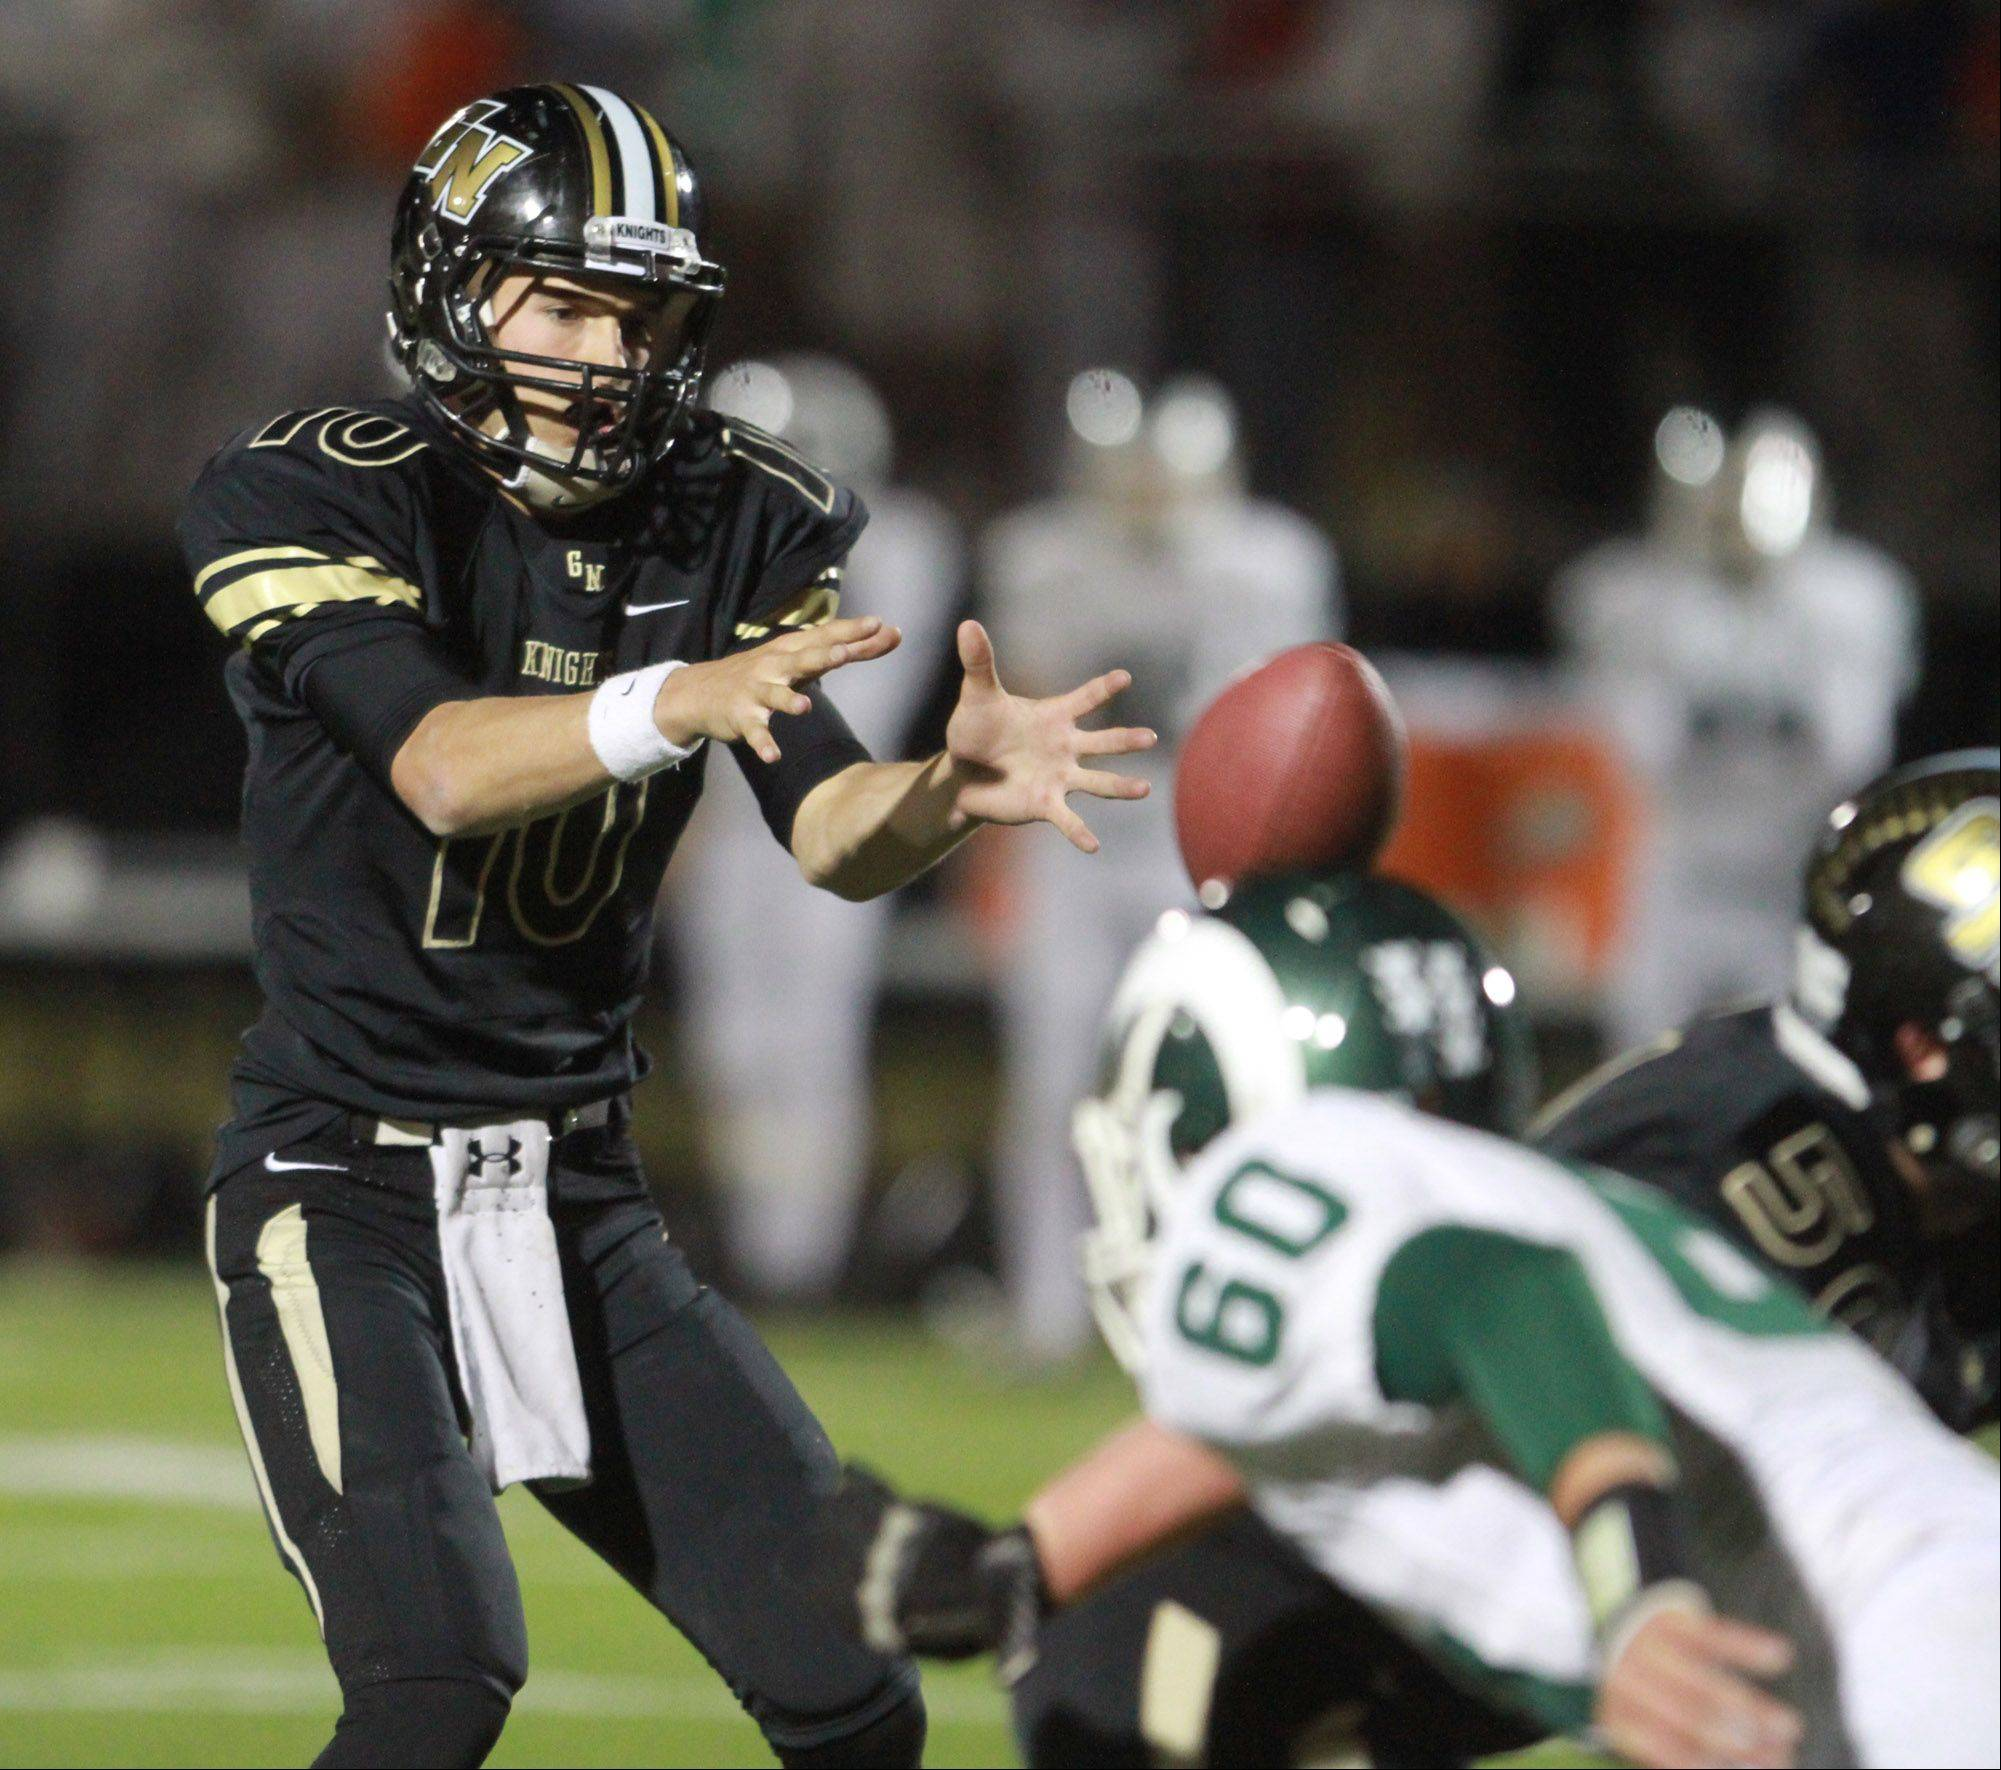 Grayslake North quarterback Anthony Fish takes a snap.